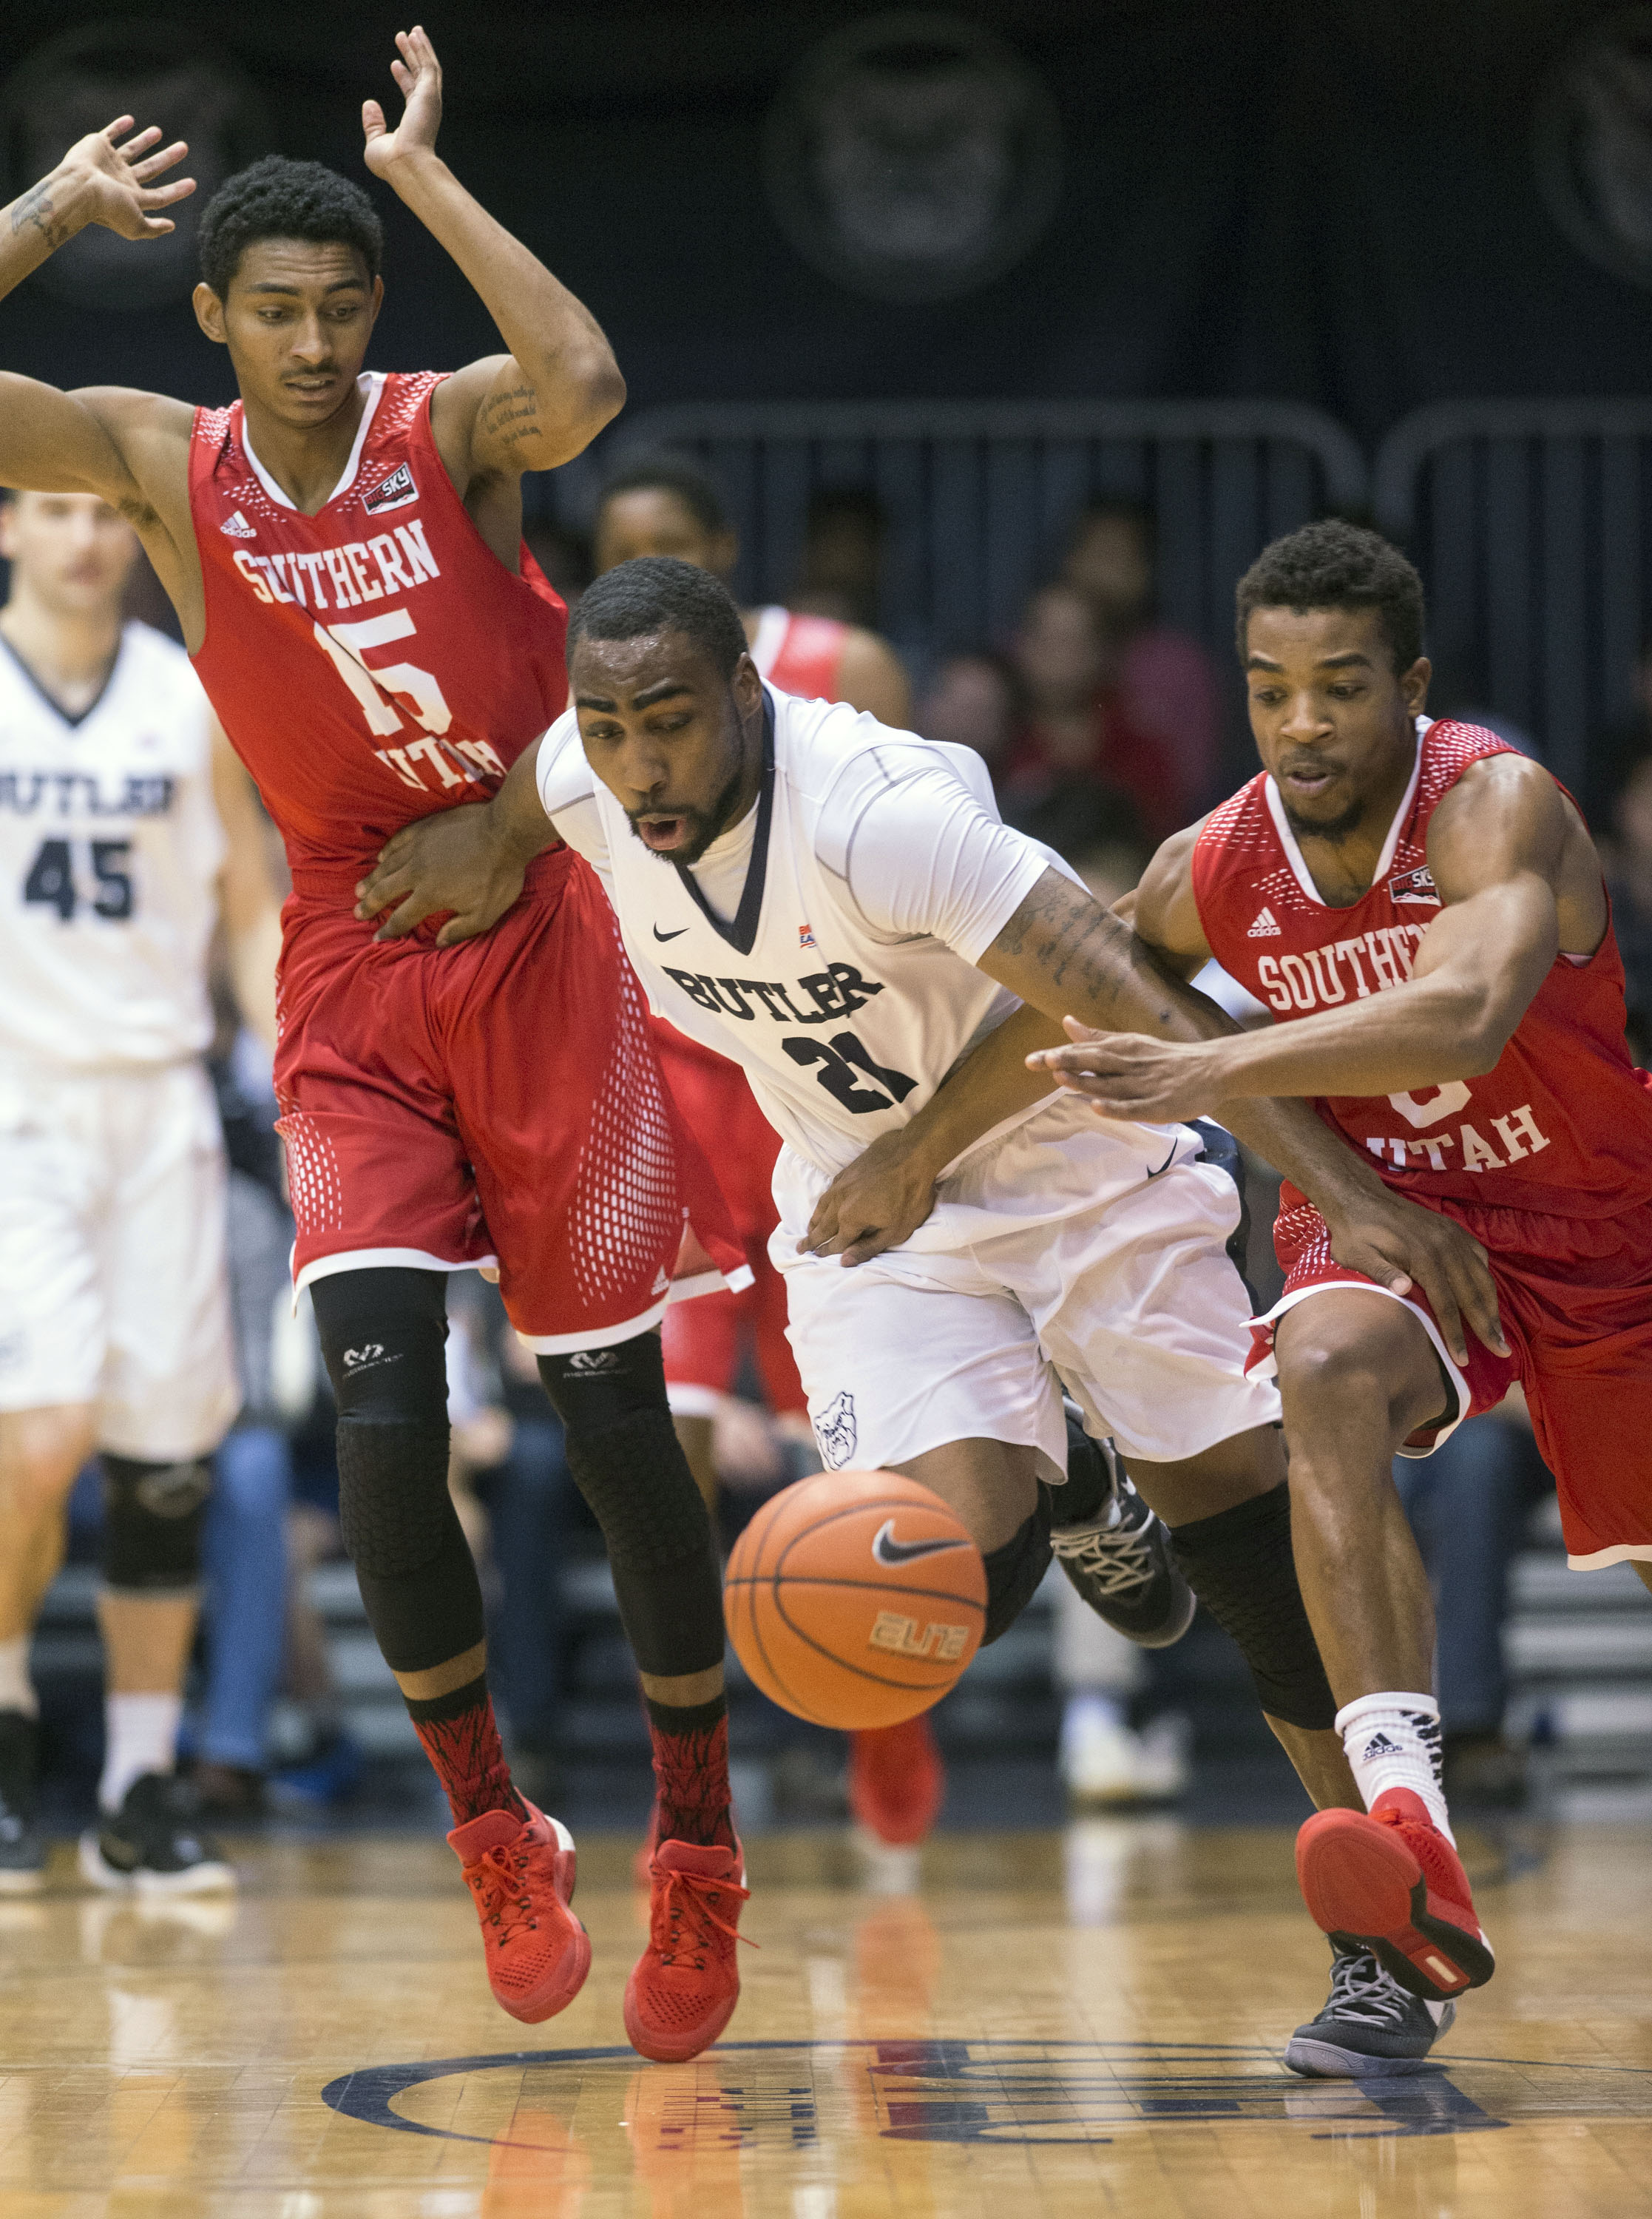 Butler forward Roosevelt Jones (21) forces his way between Southern Utah guard Juwan Major (15), left, and guard Travon Langston (3) to get the loose ball during the first half of an NCAA college basketball game, Tuesday, Dec. 22, 2015, in Indianapolis. (